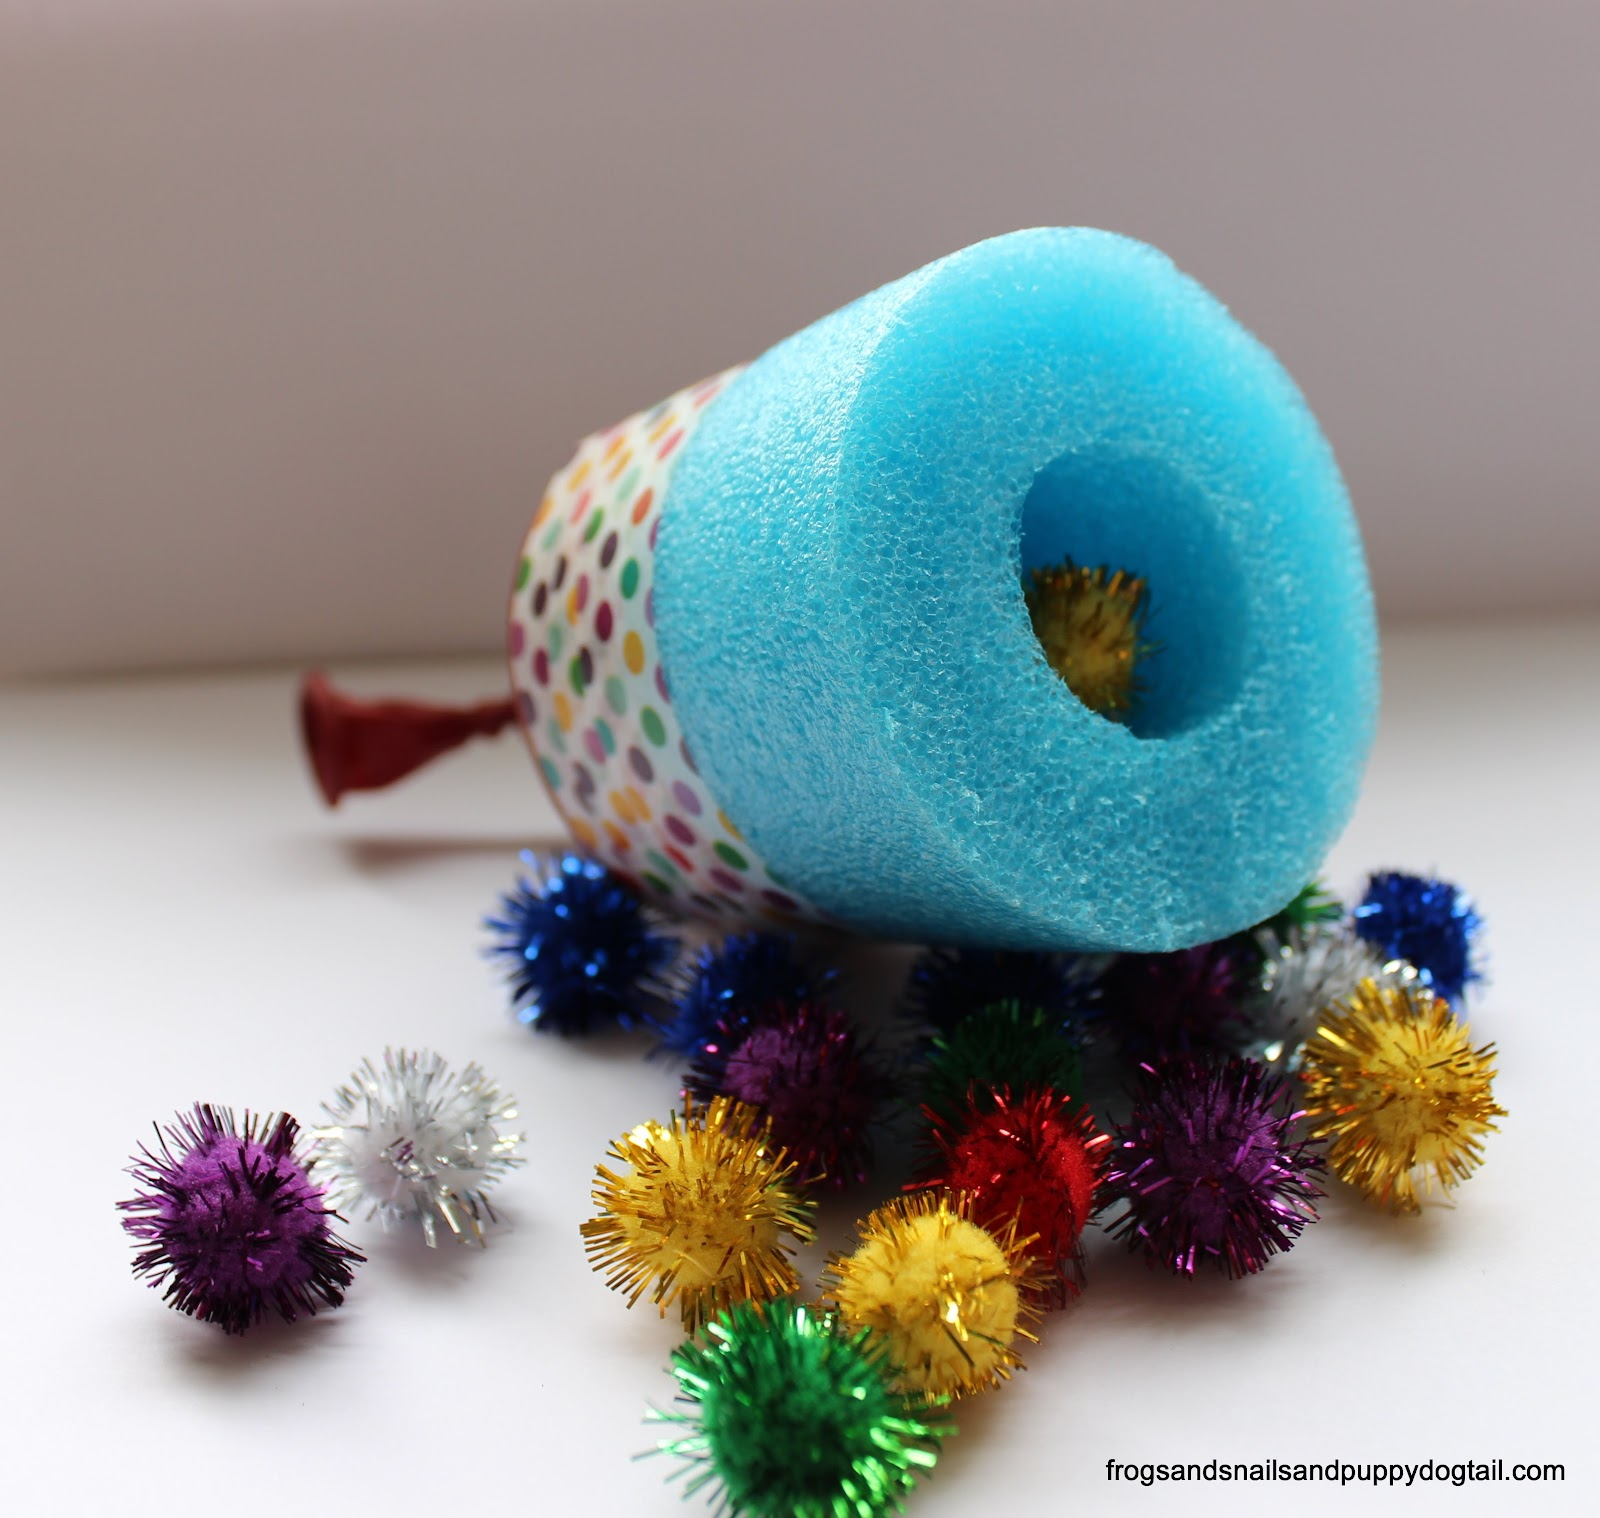 DIY pool noodle shooter with pom poms